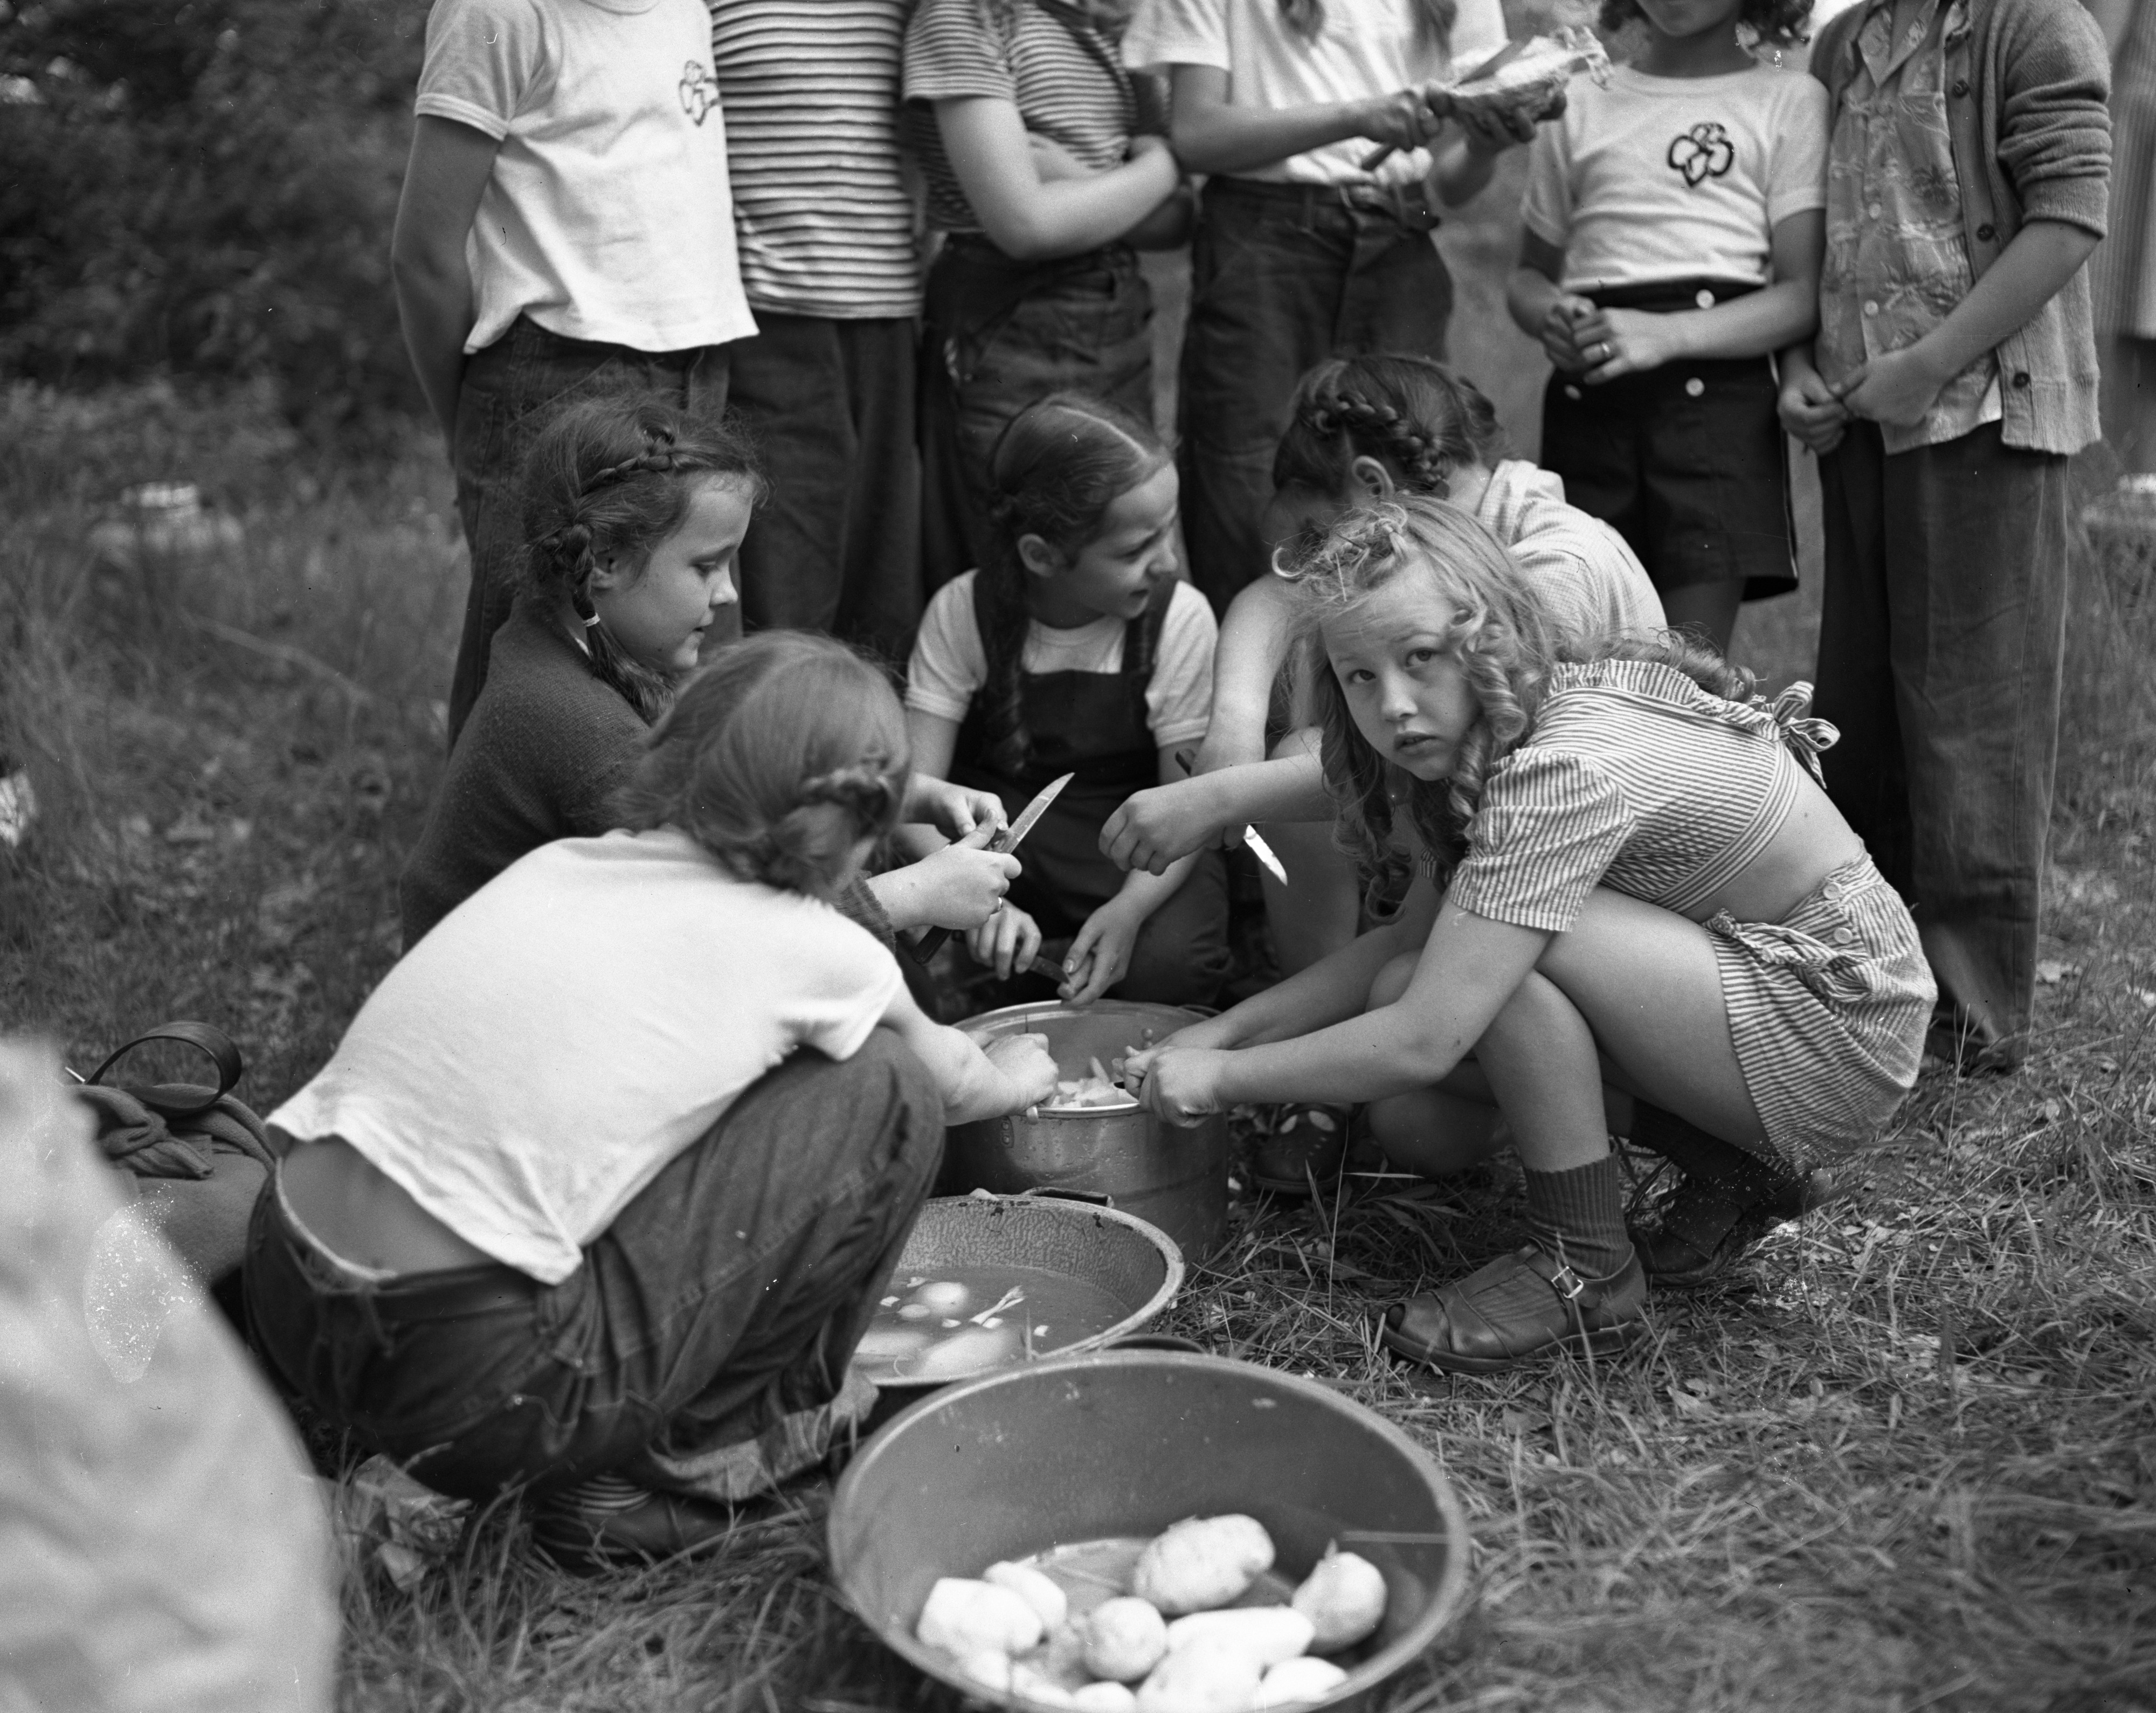 Girl Scout Cooking Out at  Camp Hilltop, June 1947 image